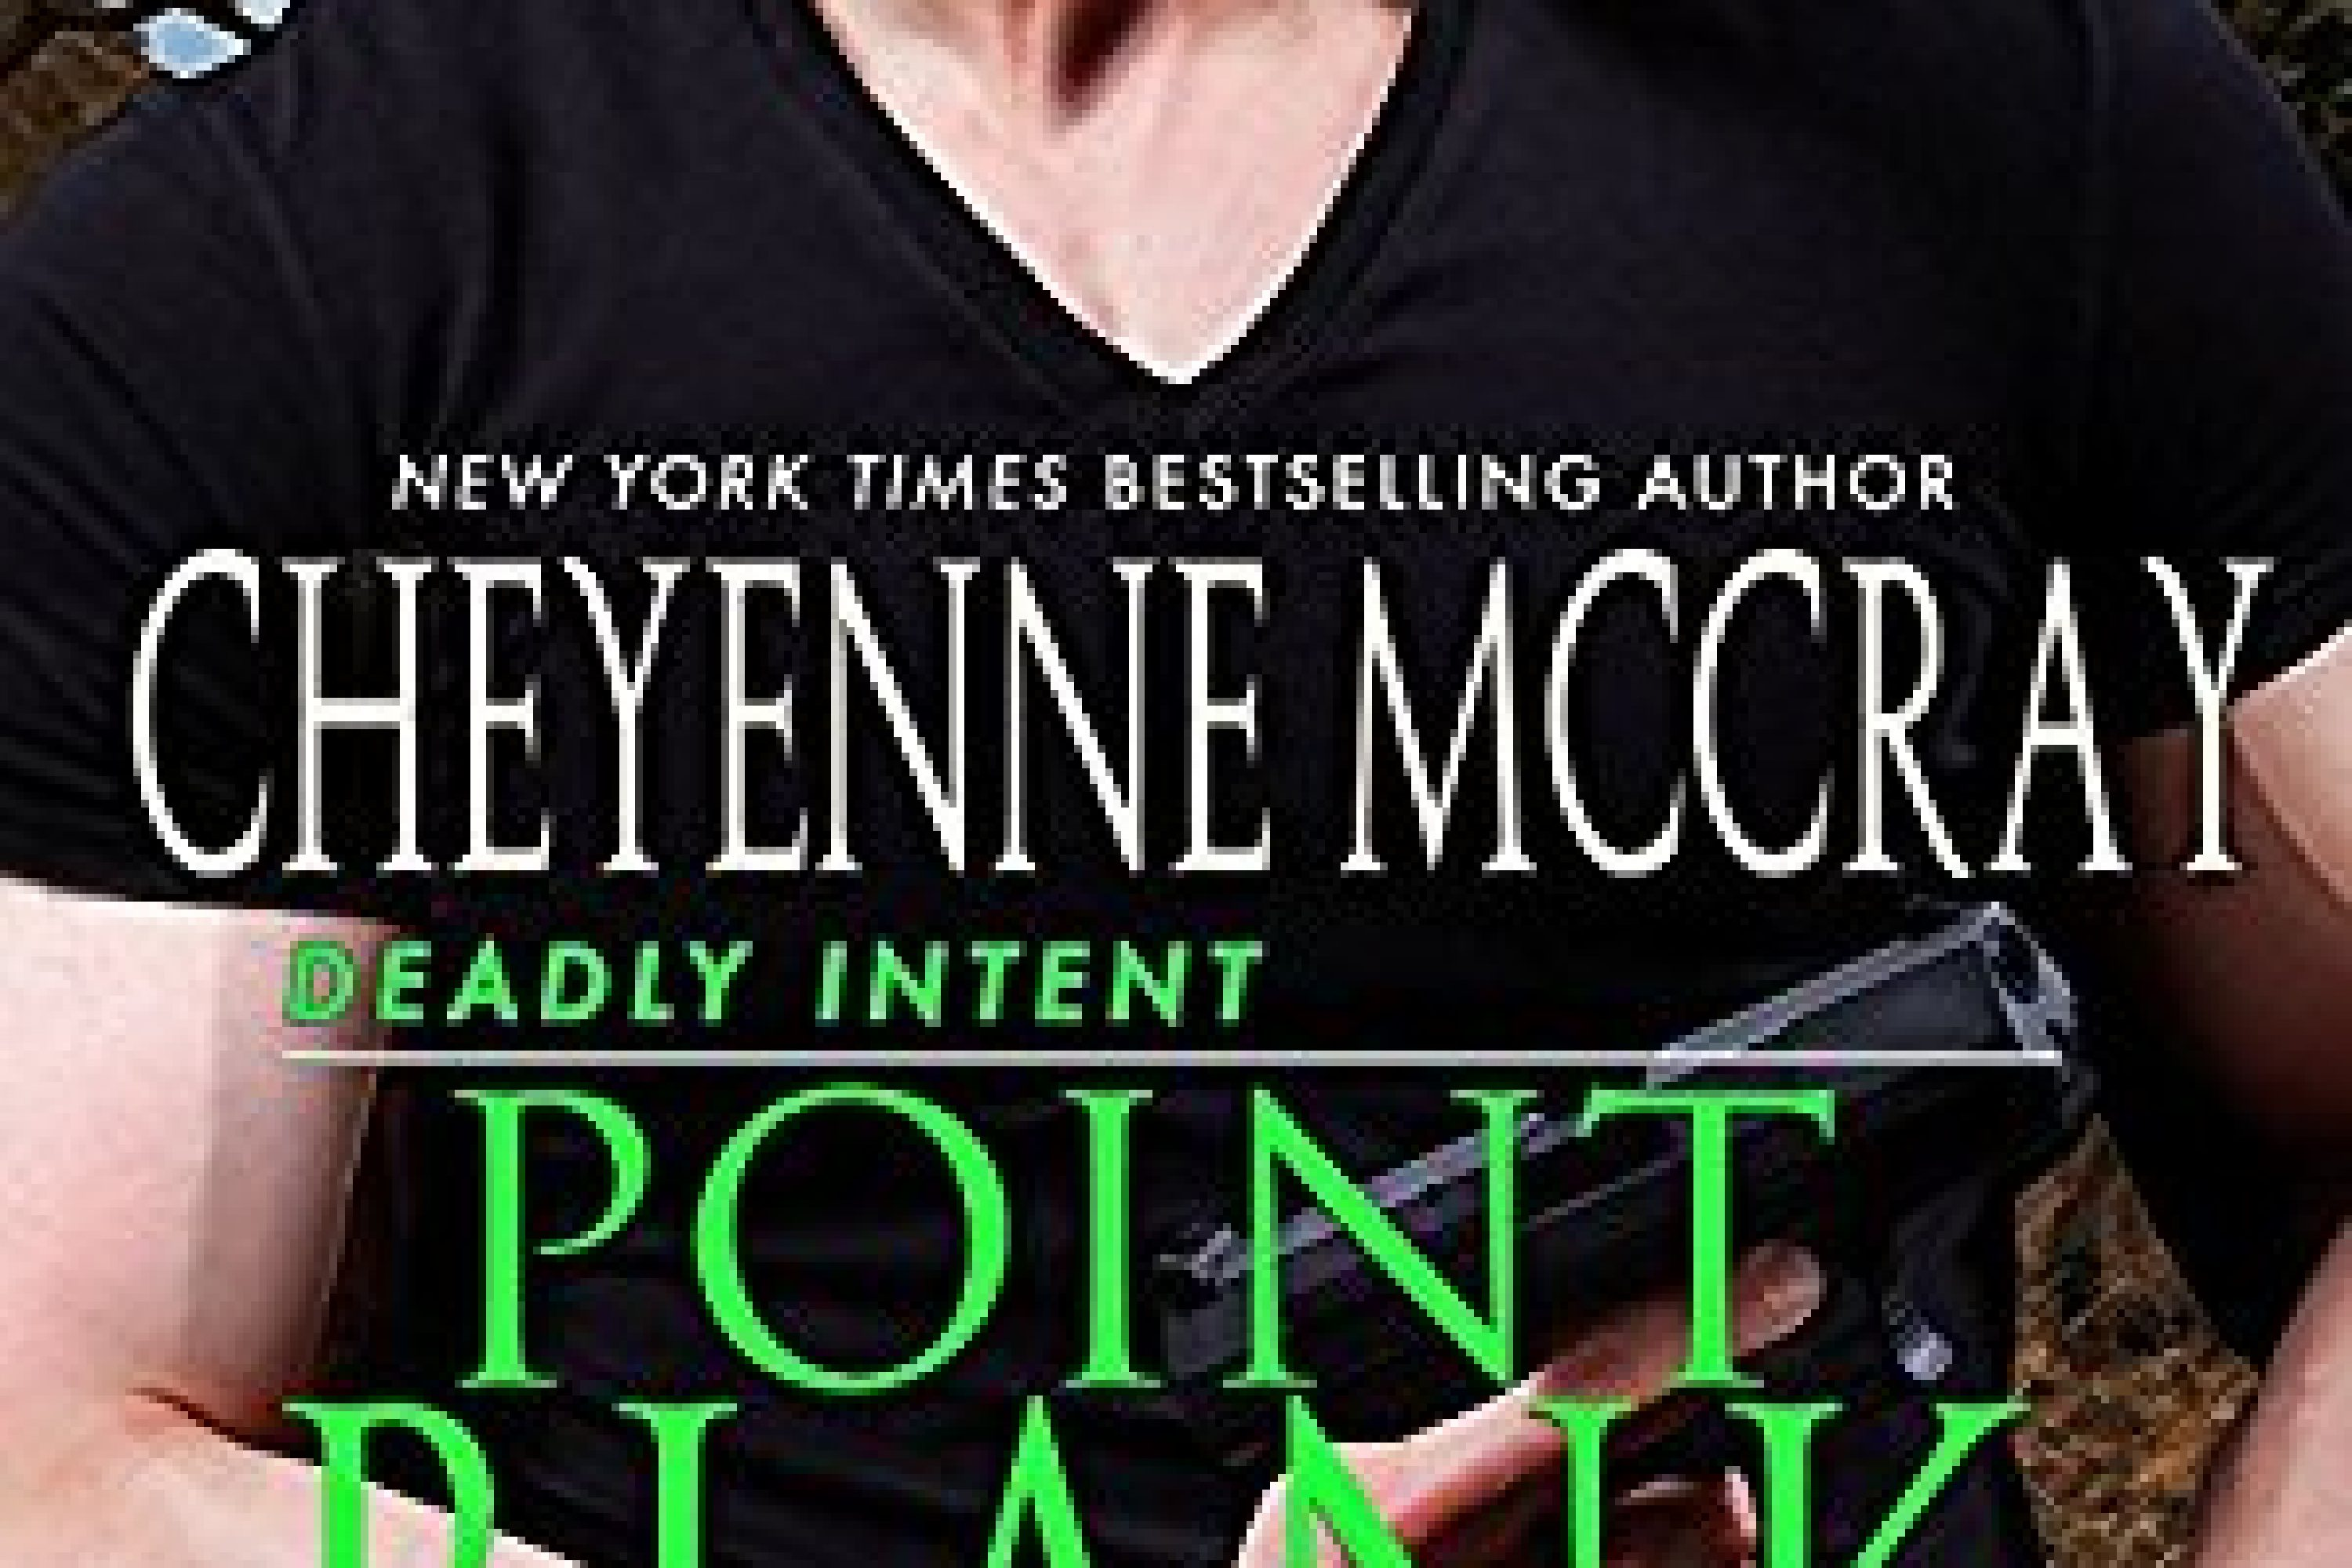 Now Available in Audio: Point Blank by Cheyenne McCray